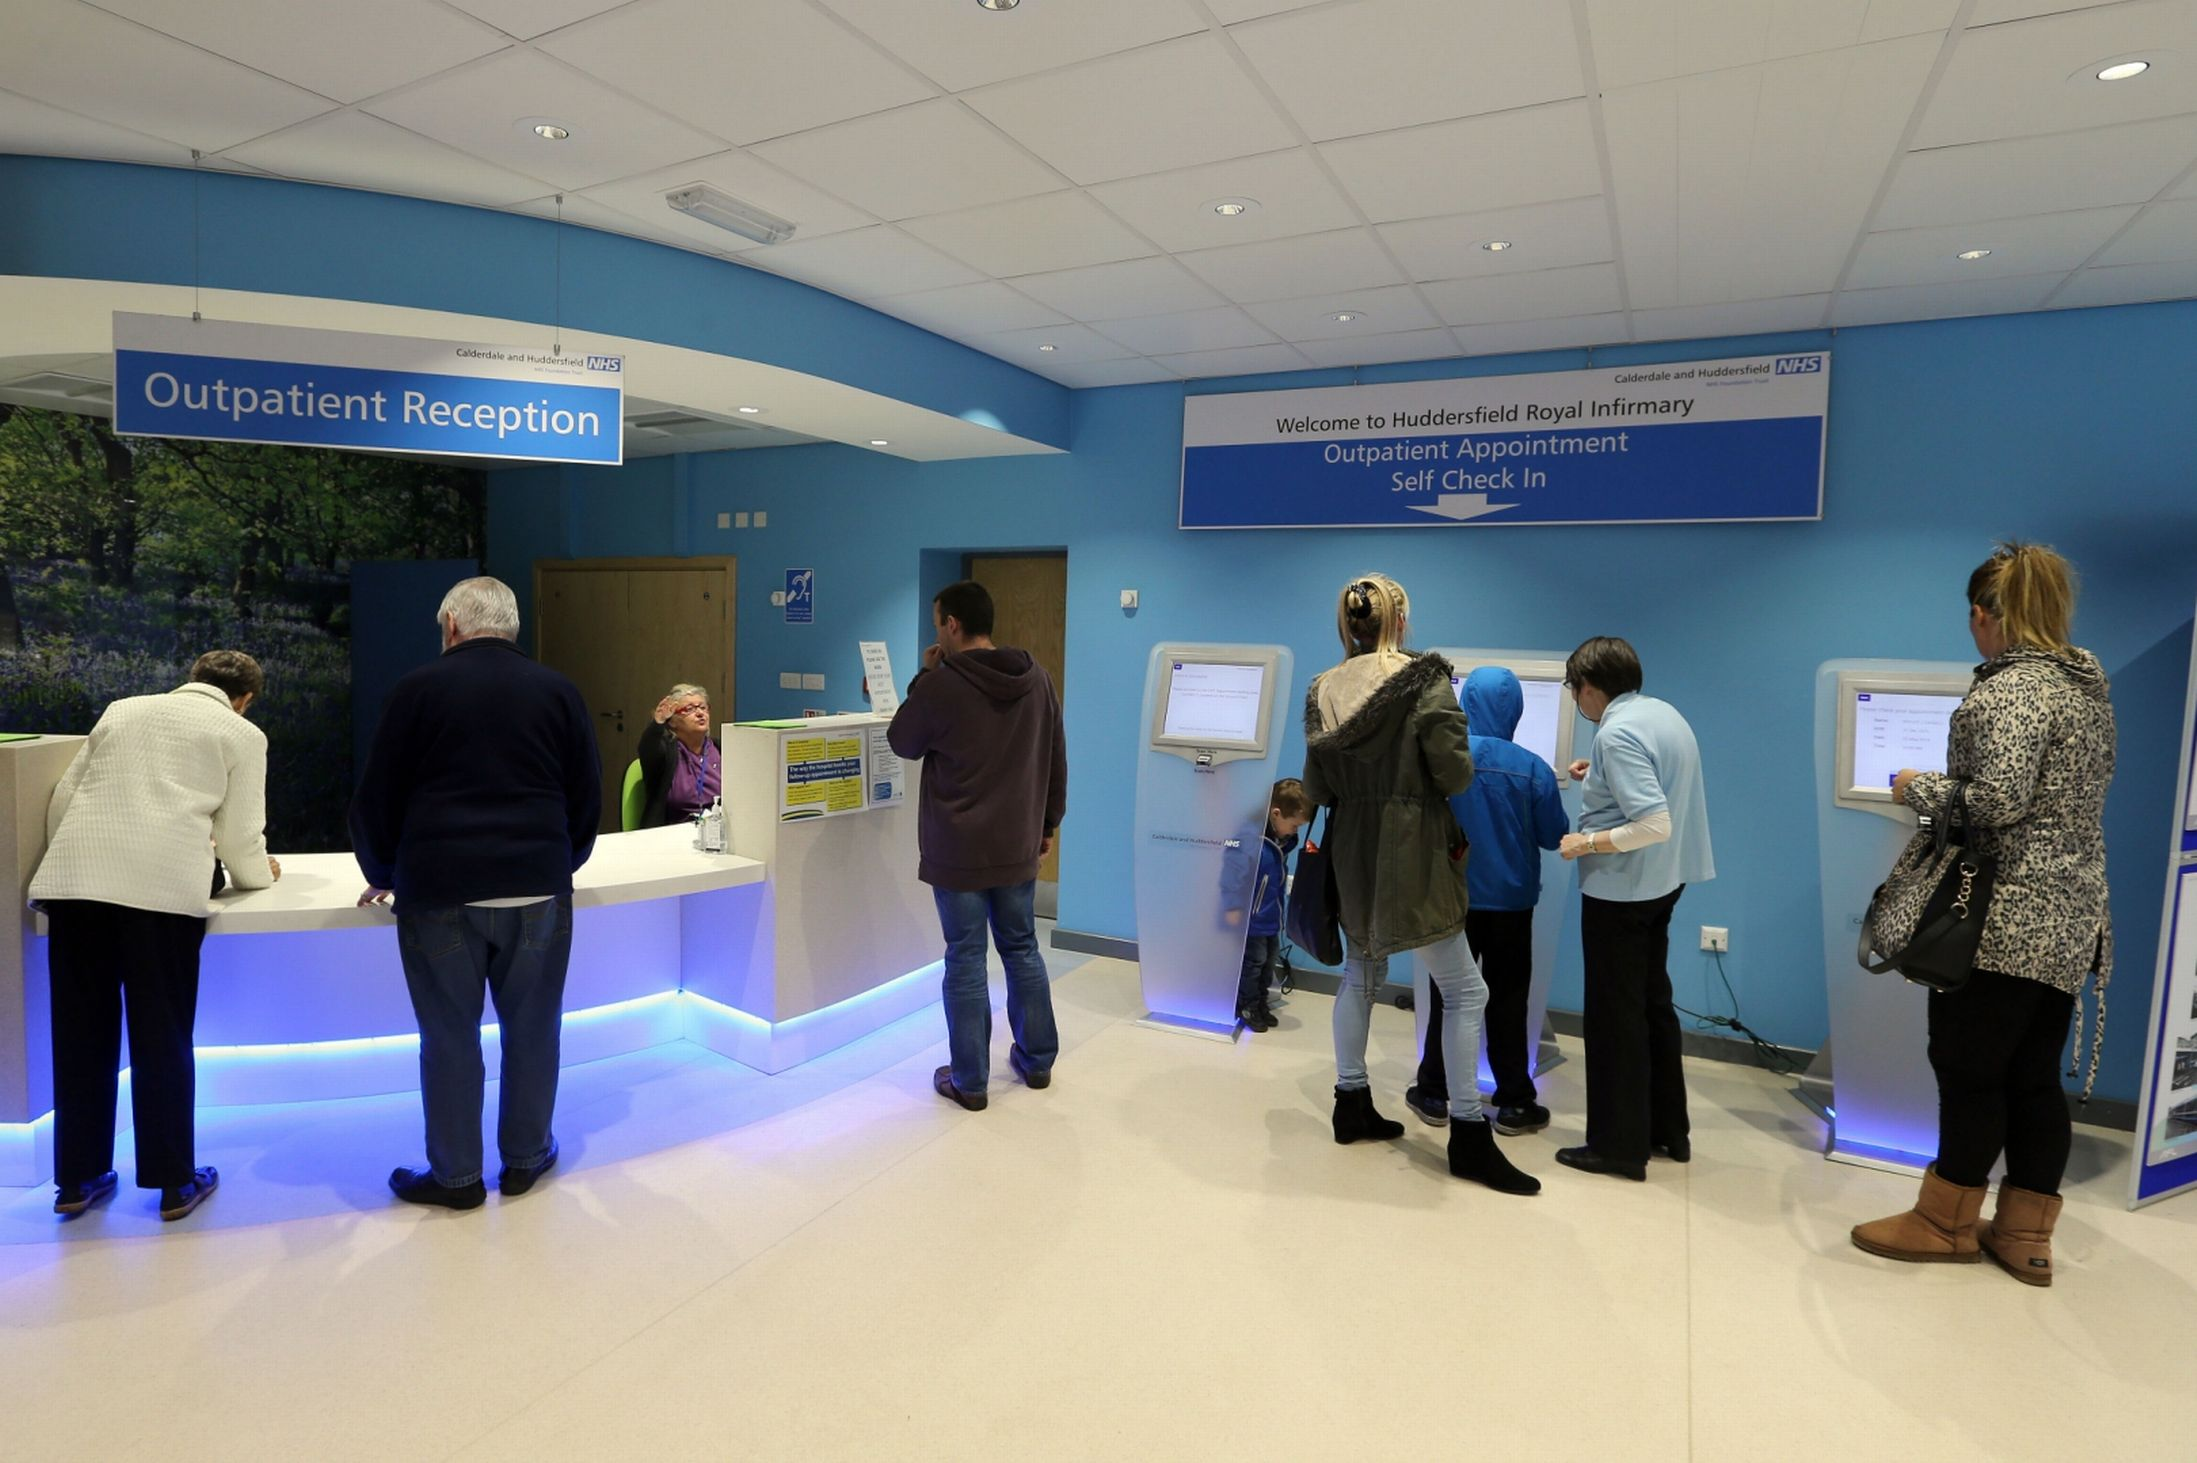 Patient check-in kiosk design in UK